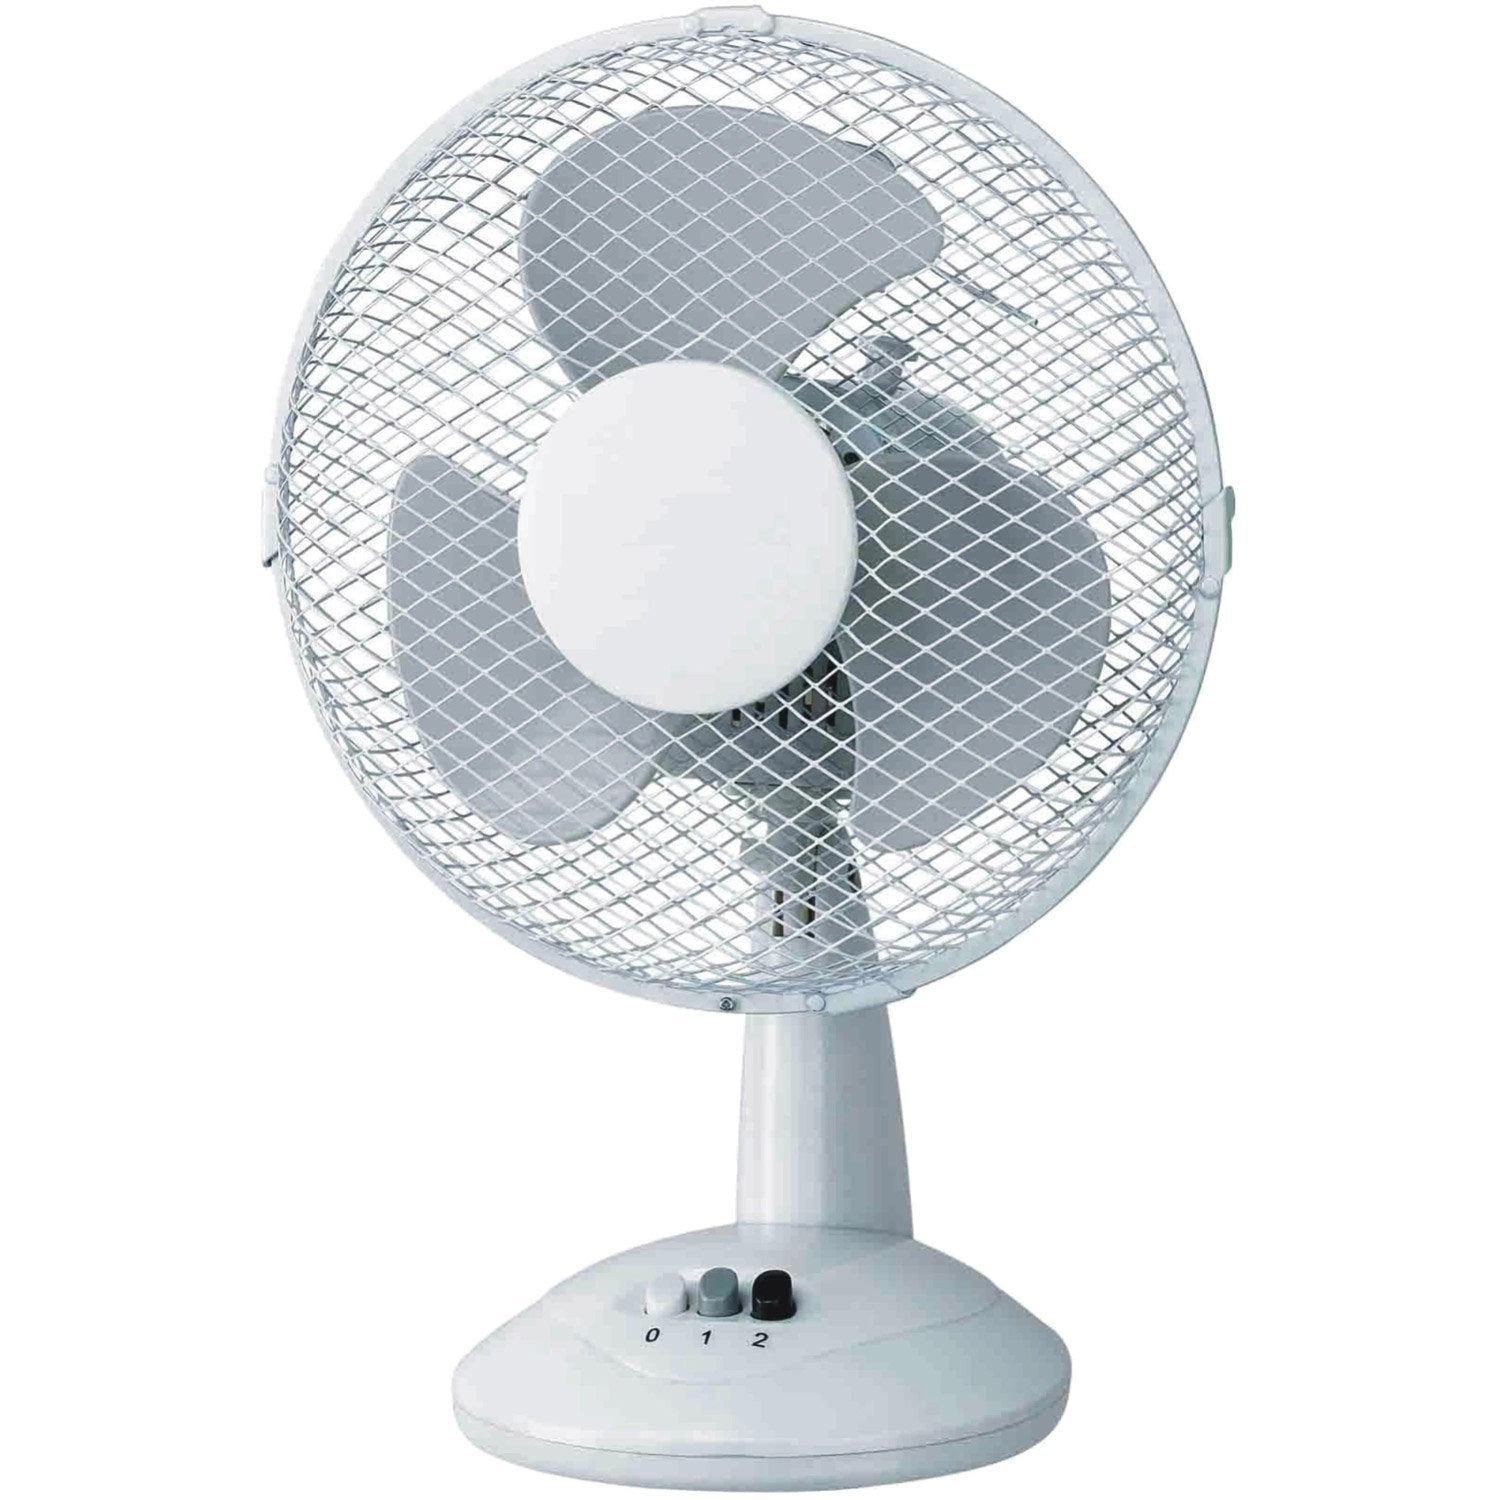 Ventilateur leroy merlin - Ventilateur de table silencieux ...